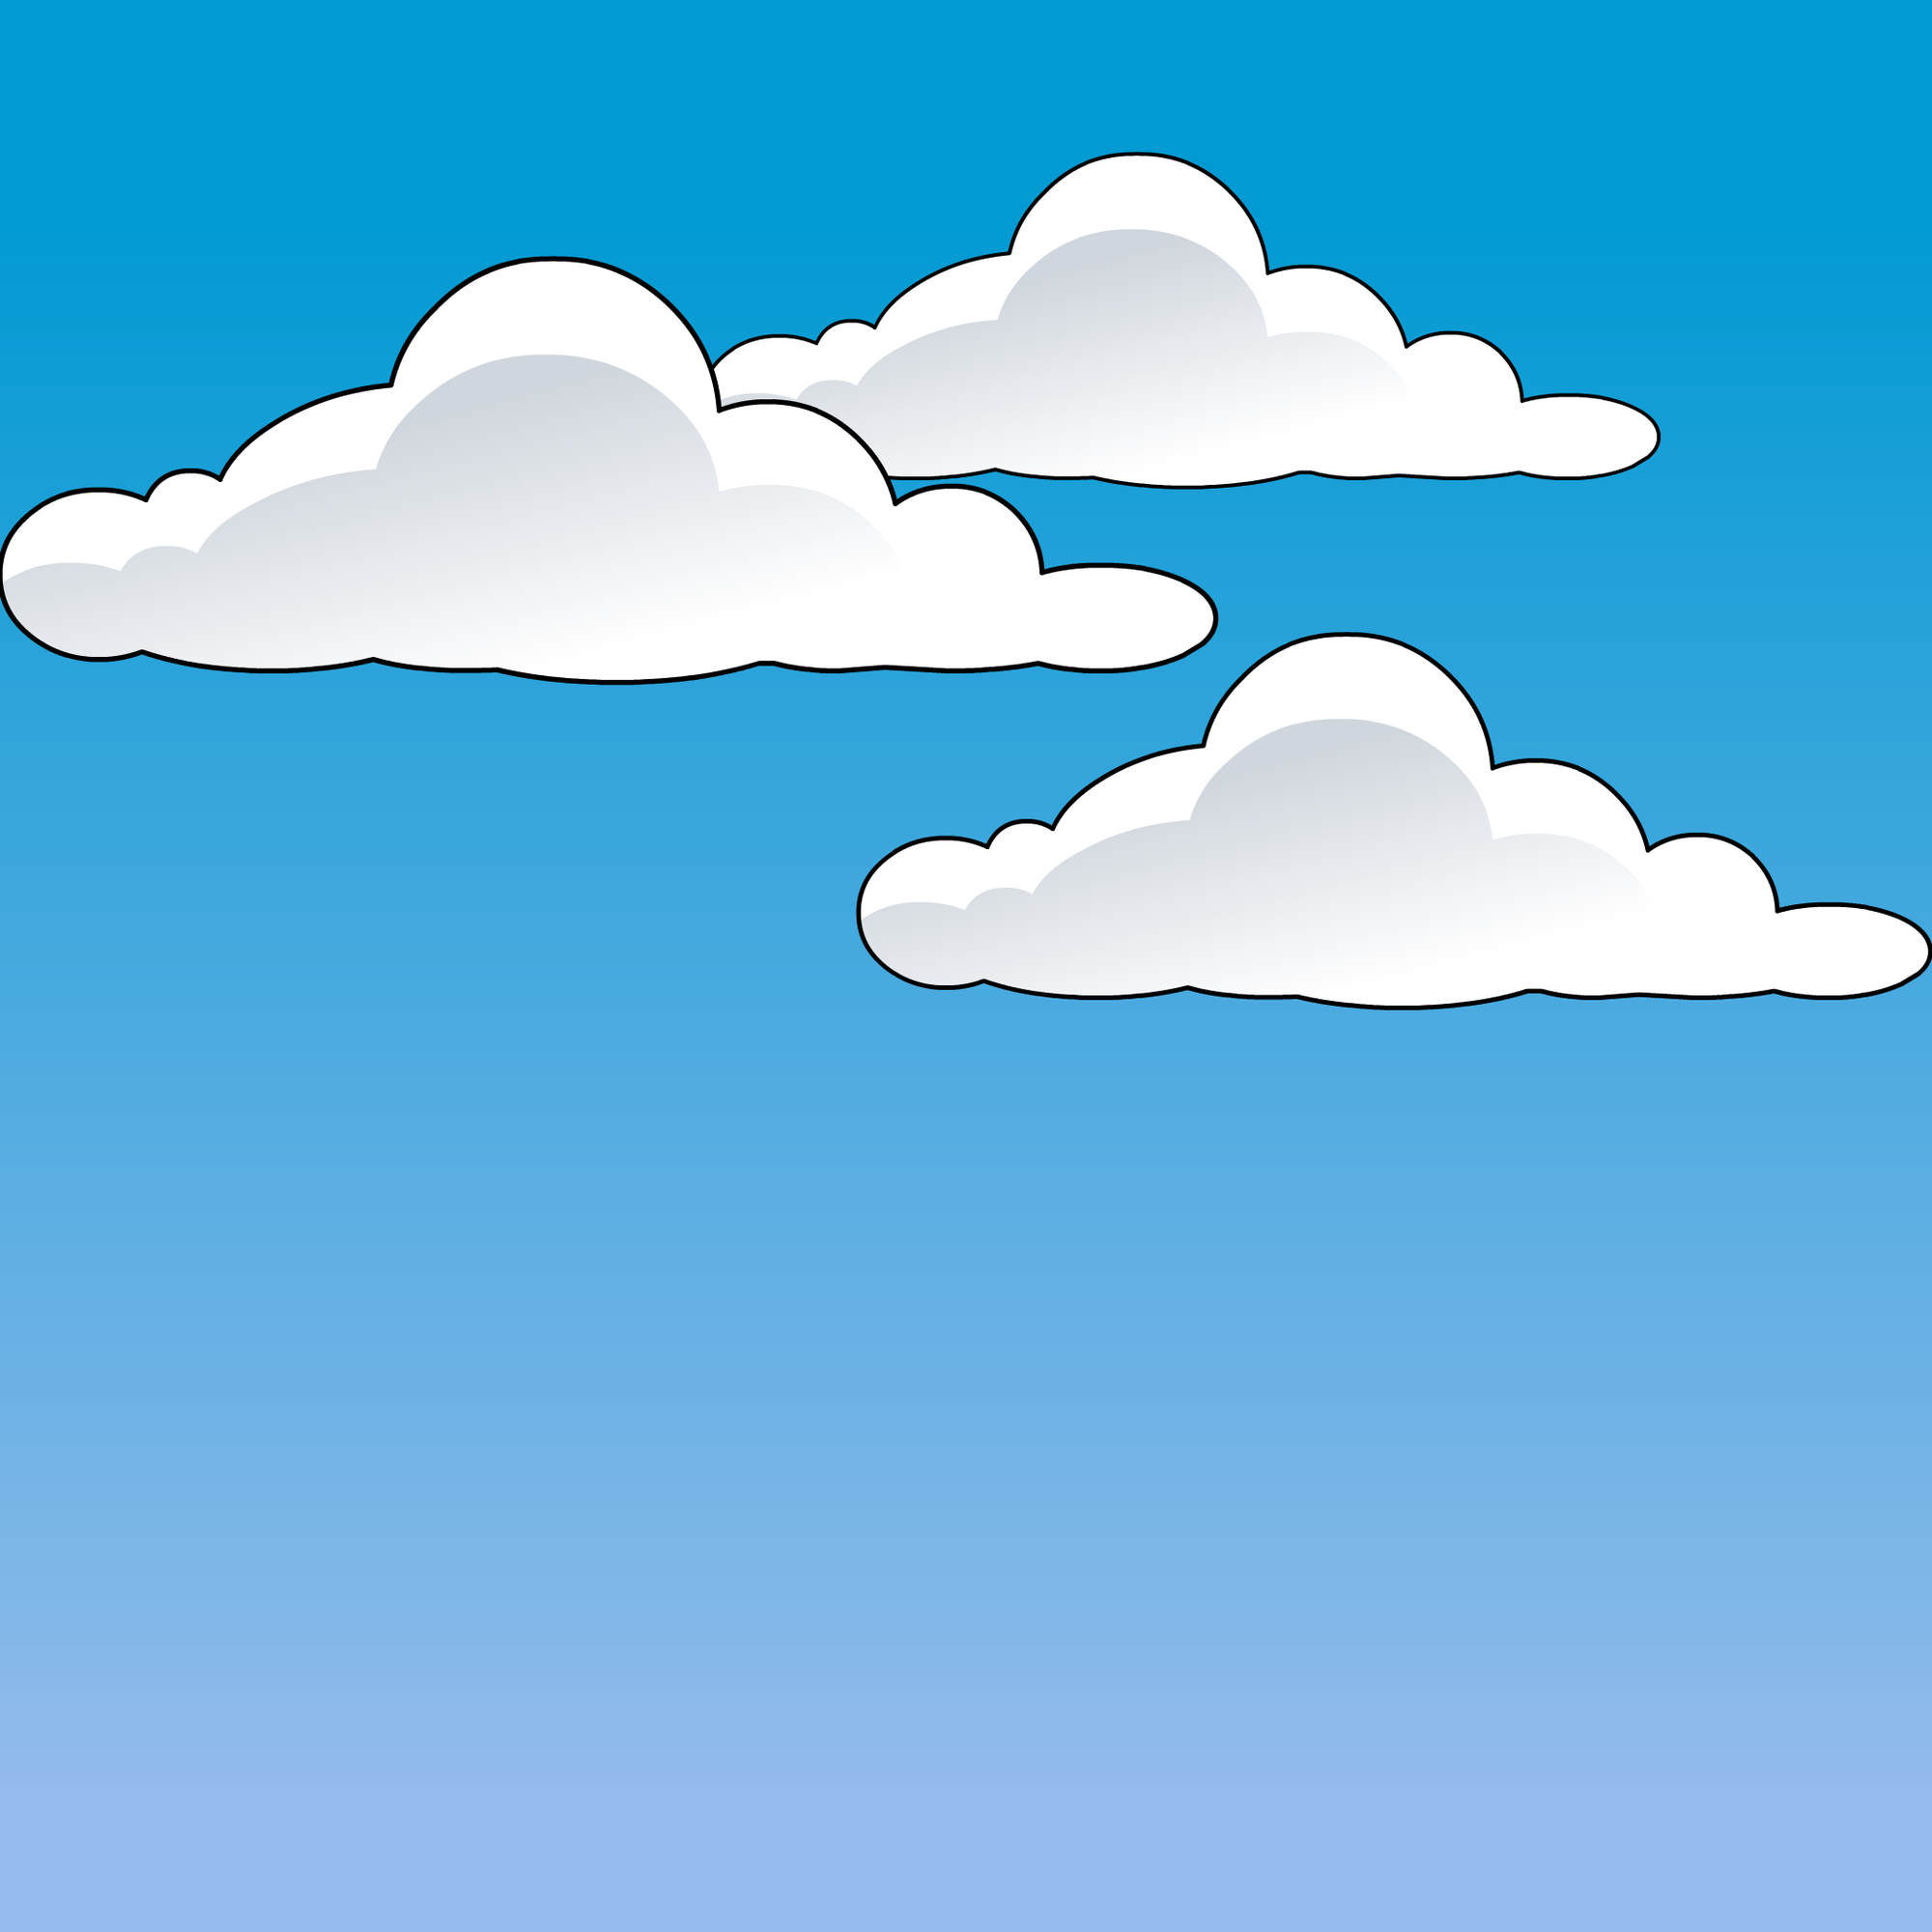 Clouds Background Air Penguin Wiki FANDOM powered by Wikia 2000x2000